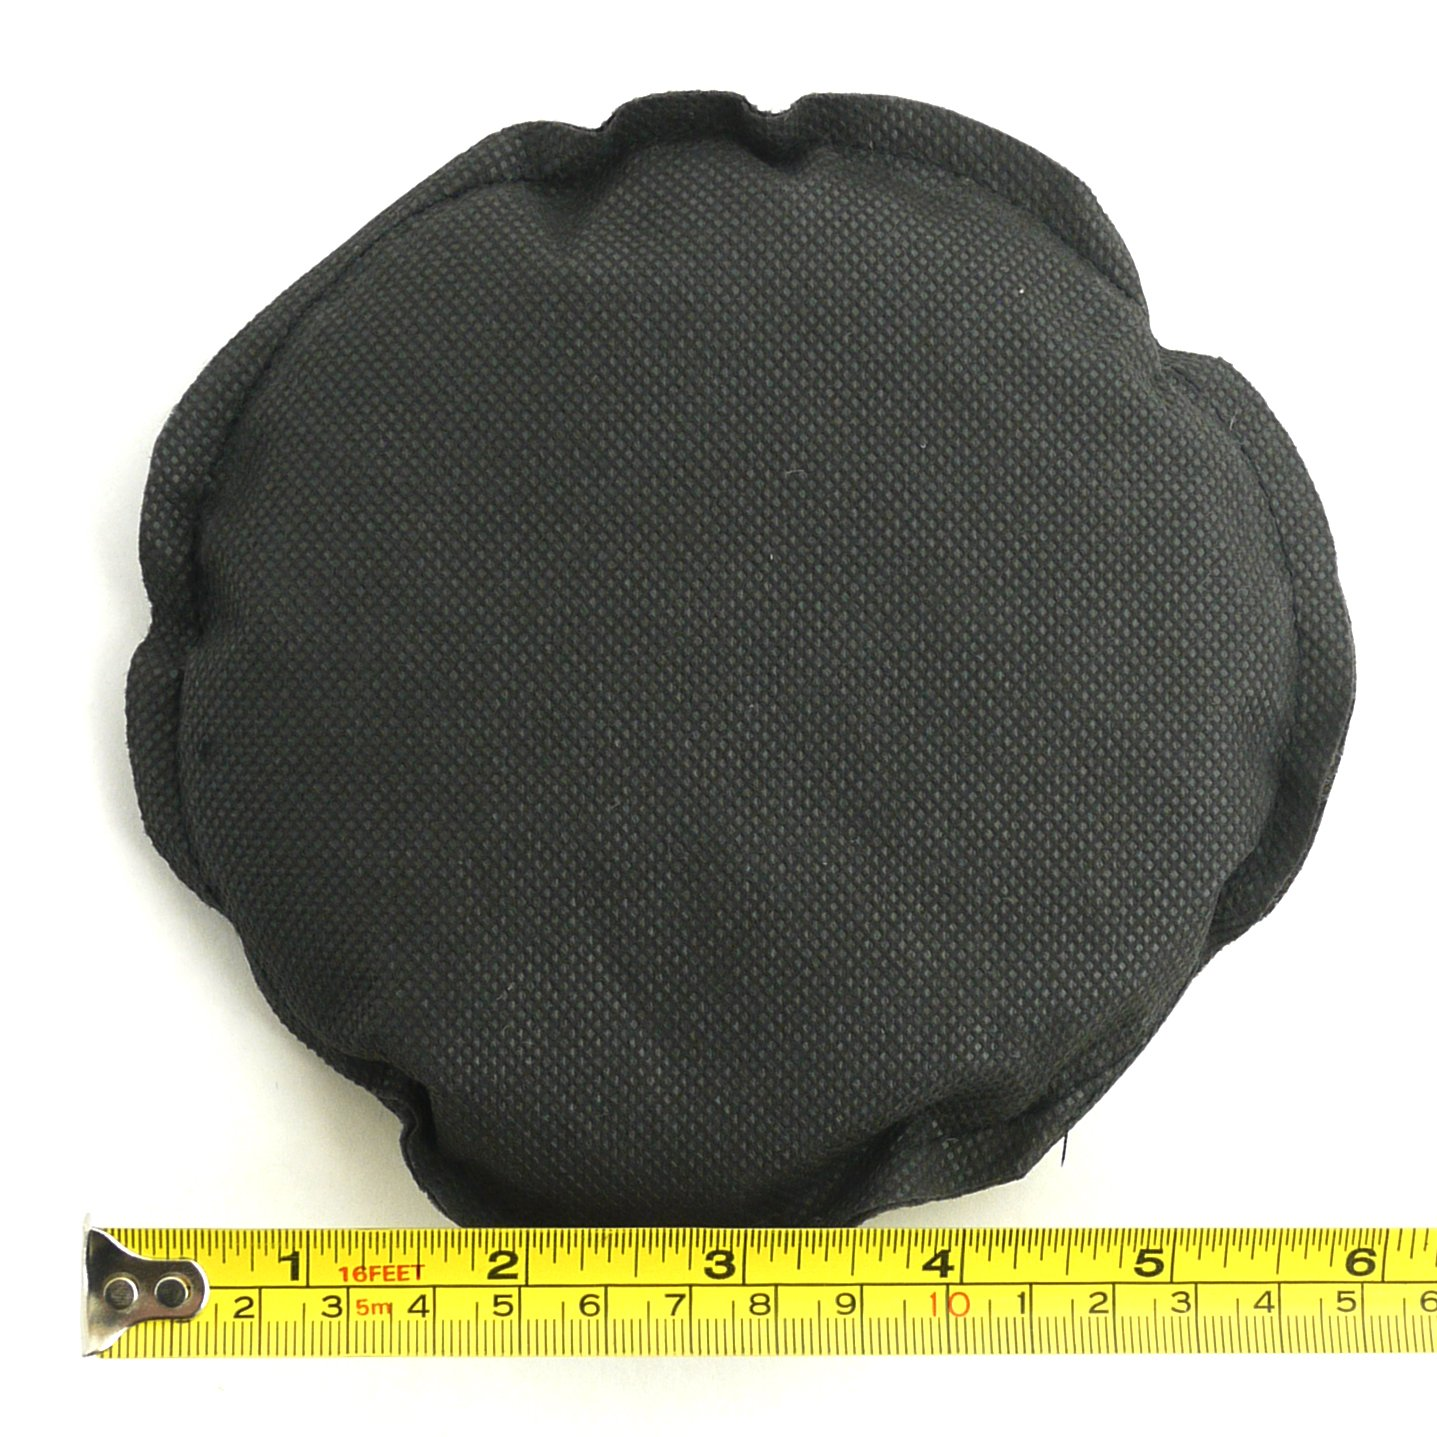 4pc ThinkBamboo Round Replacement Carbon Filters for Compost Bins Black